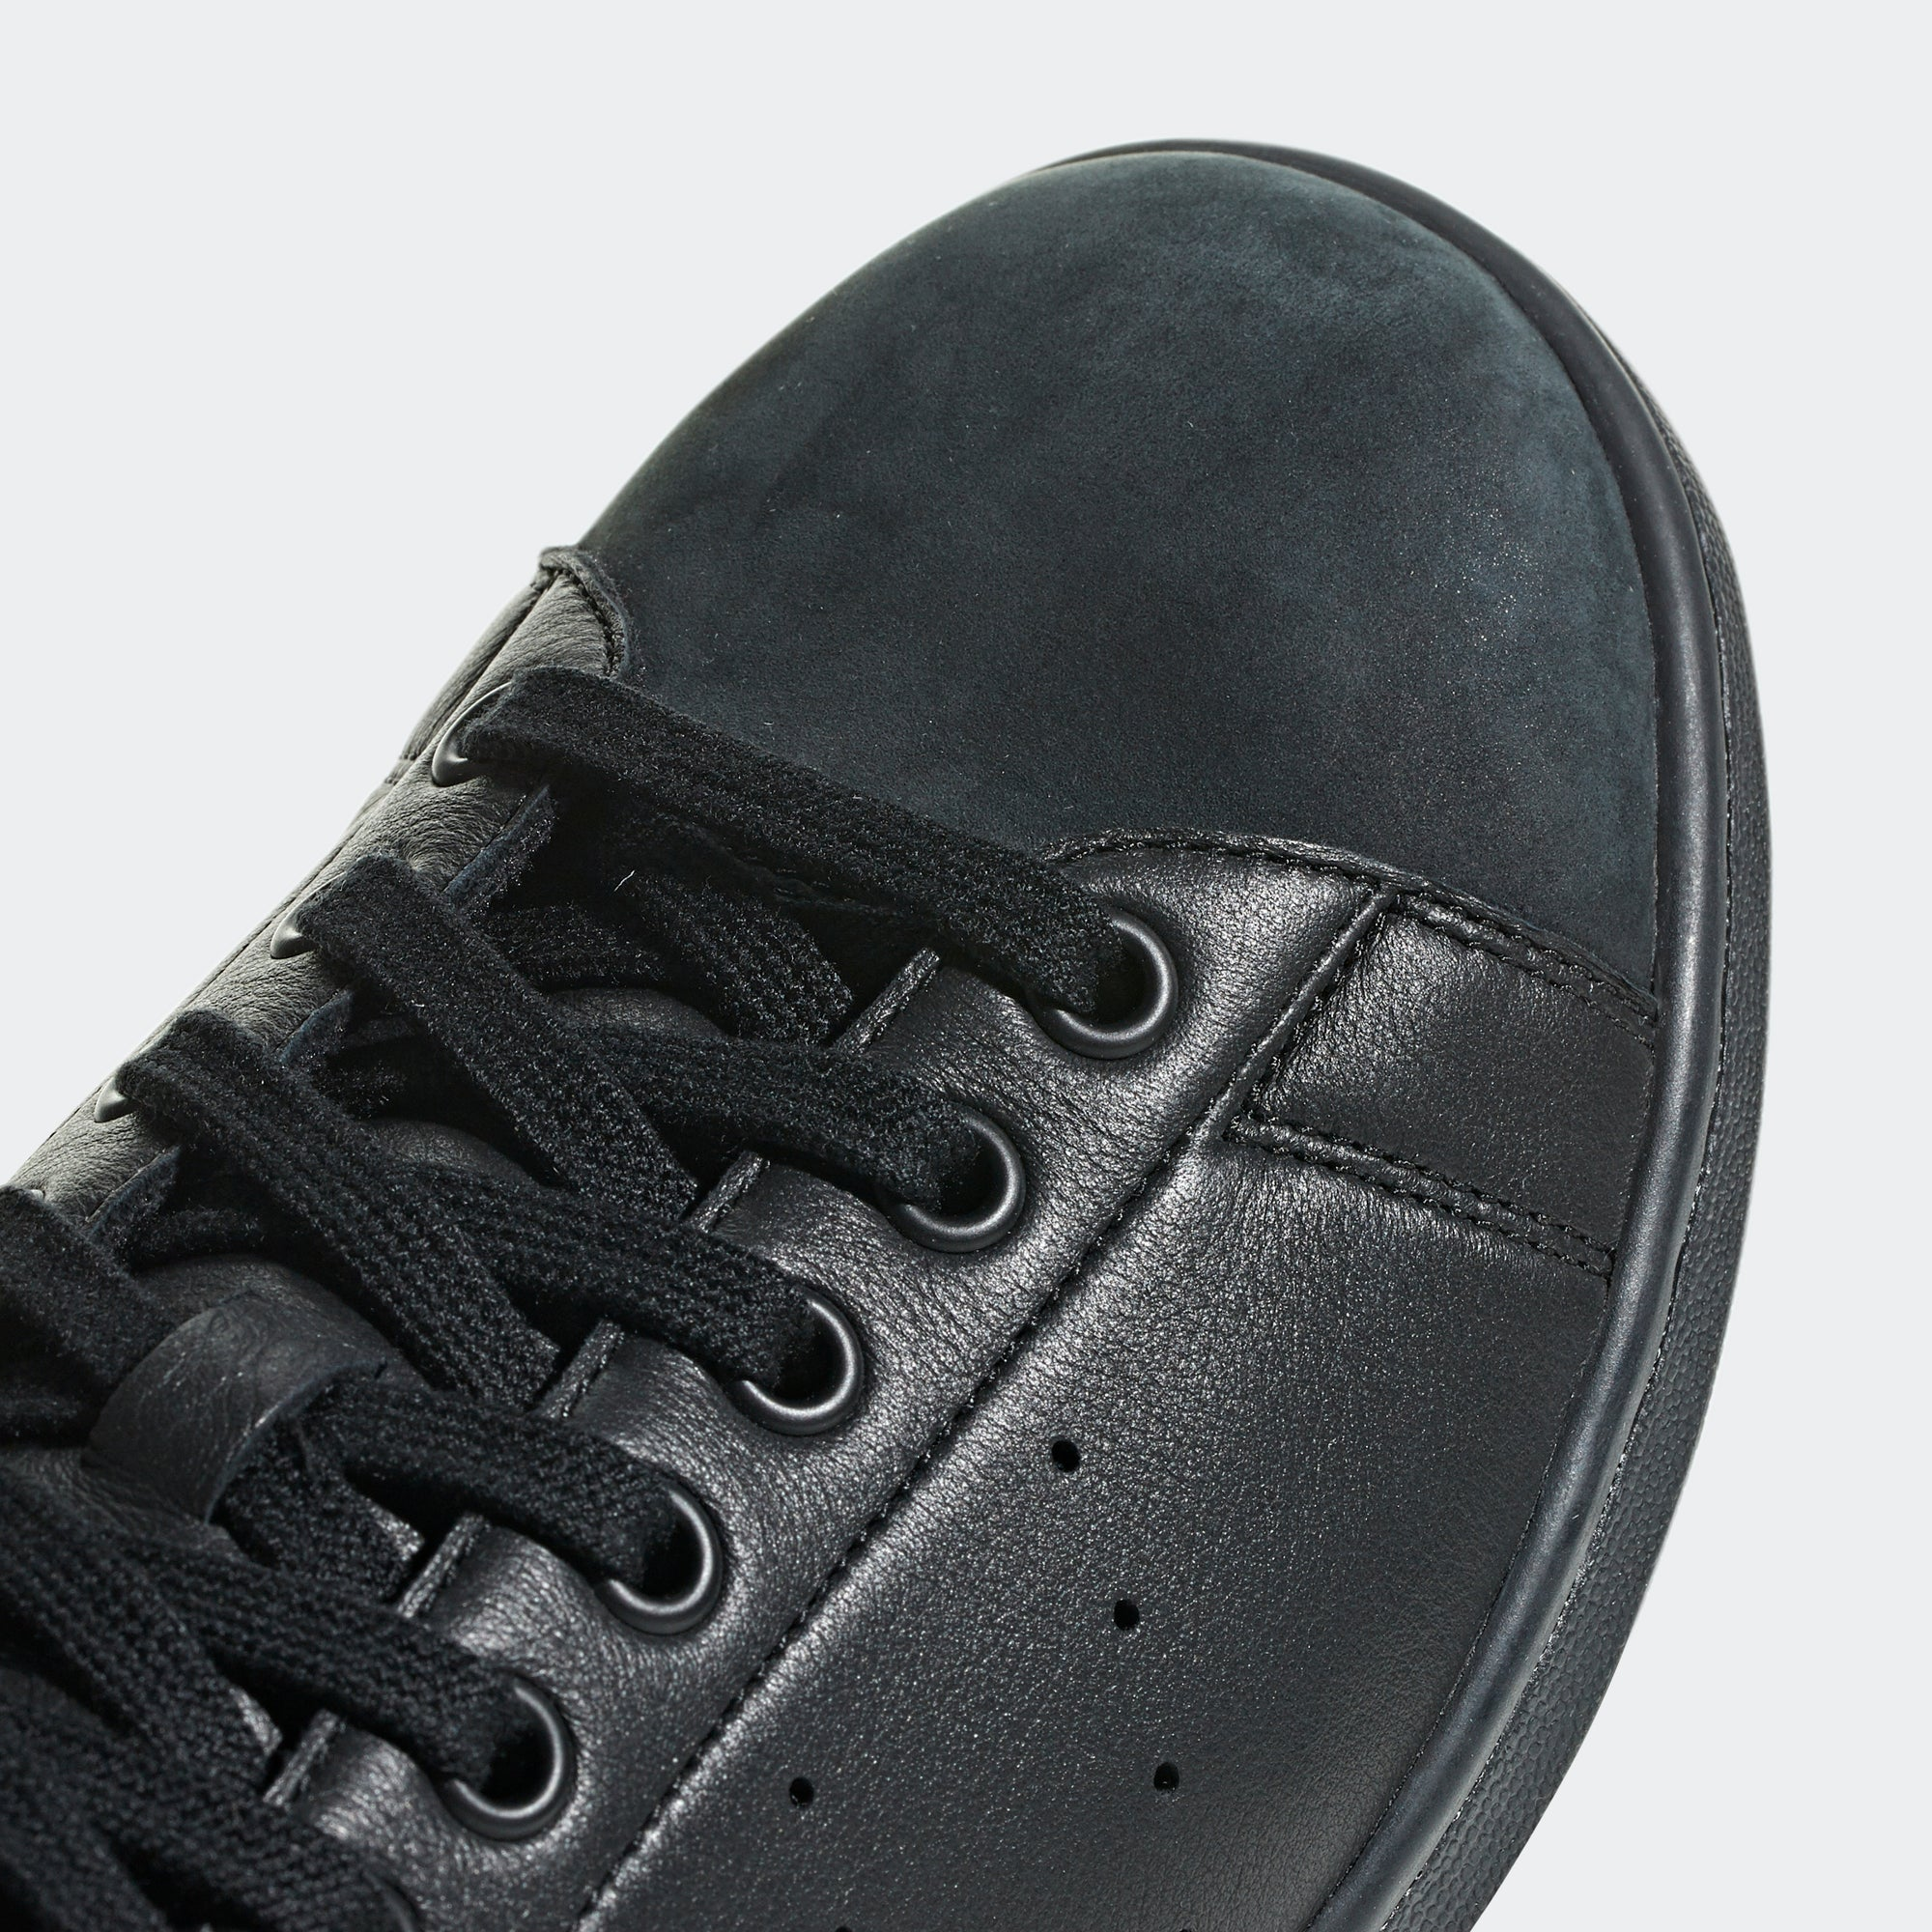 meilleur service cbabe b95d6 adidas Stan Smith Shoes Triple Black B37922 | Chicago City ...